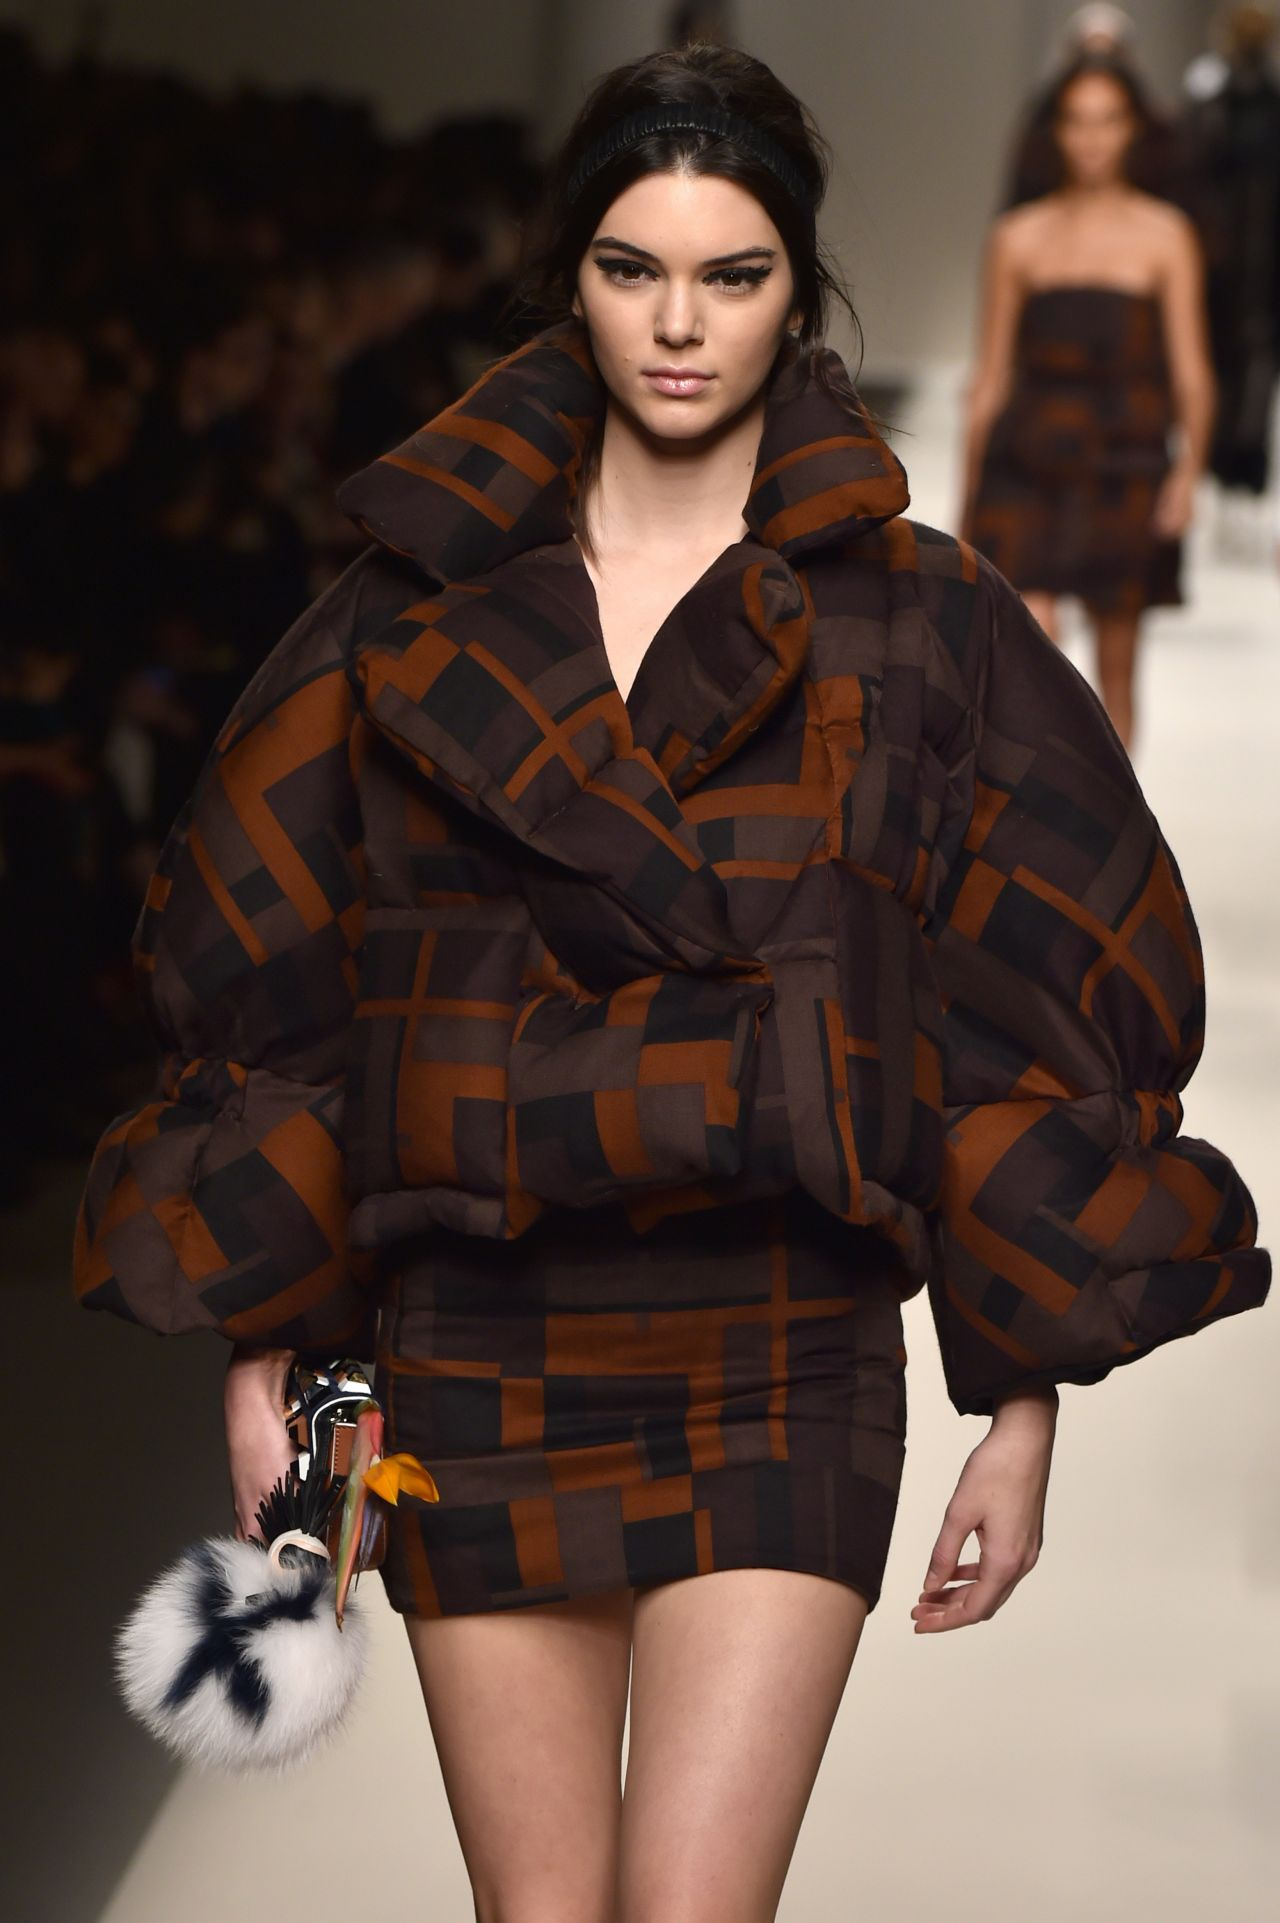 Kendall Jenner - Fendi Fashion Show in Milan, February 2015